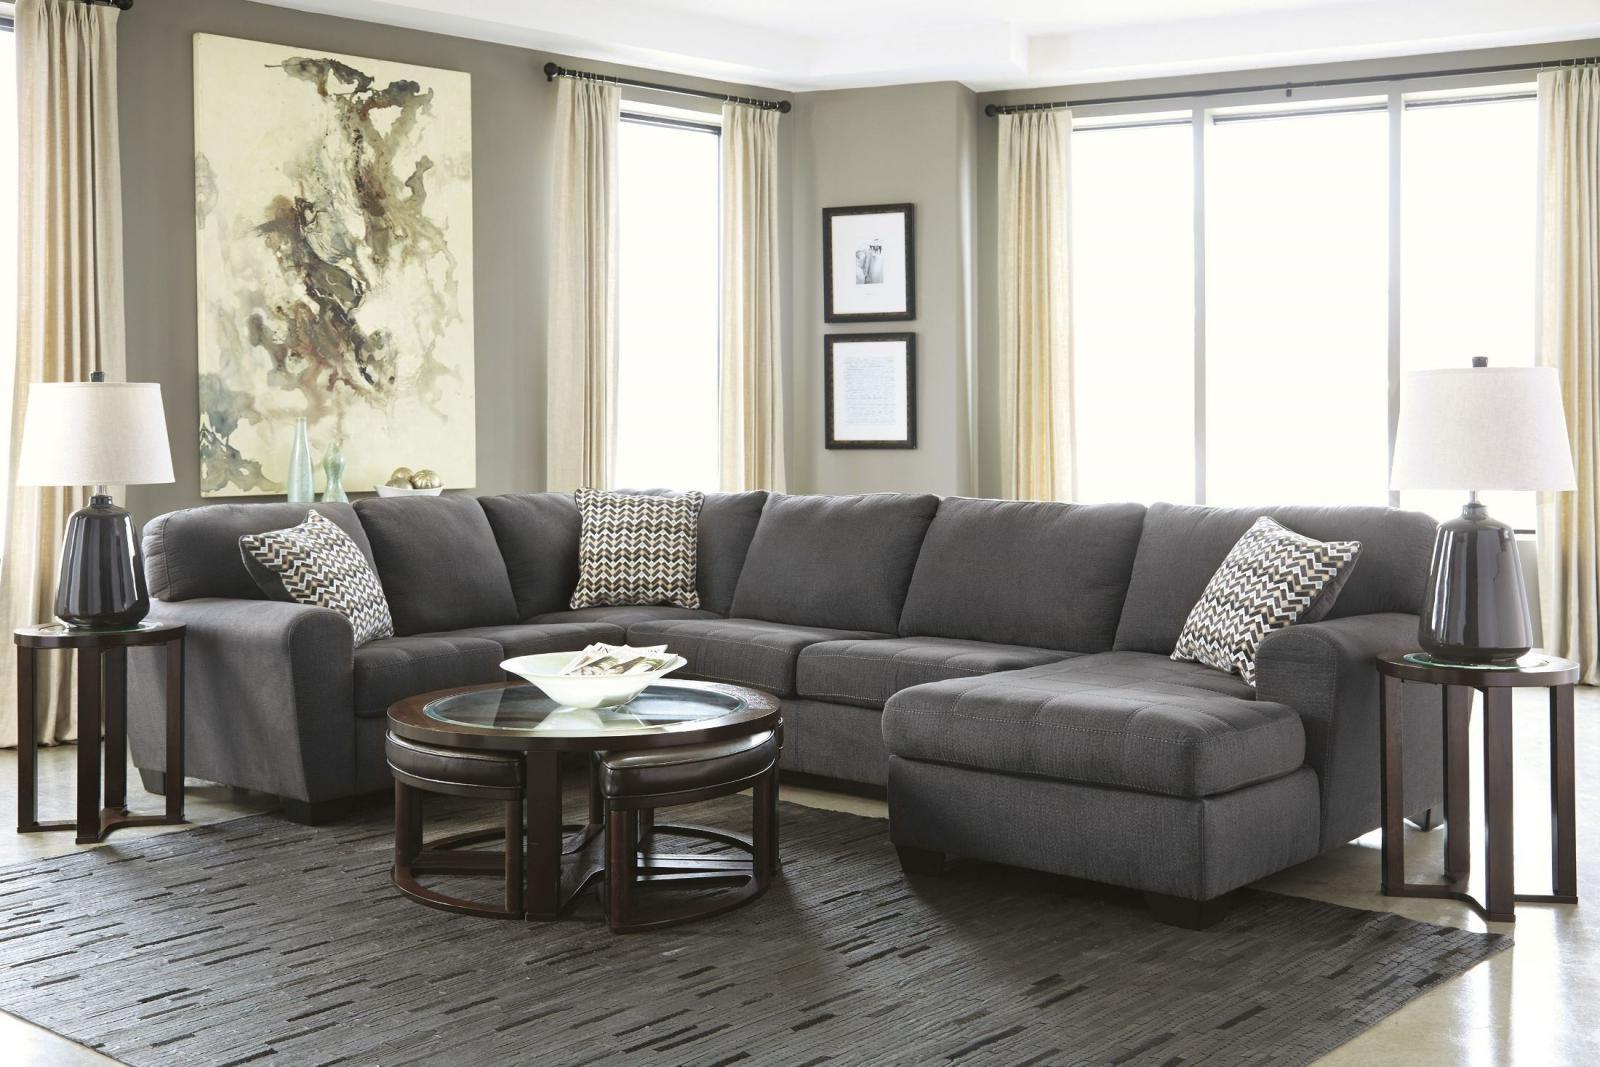 Ashley Sorenton 3 Piece Sectional in Slate Right Hand Facing Contemporary Style